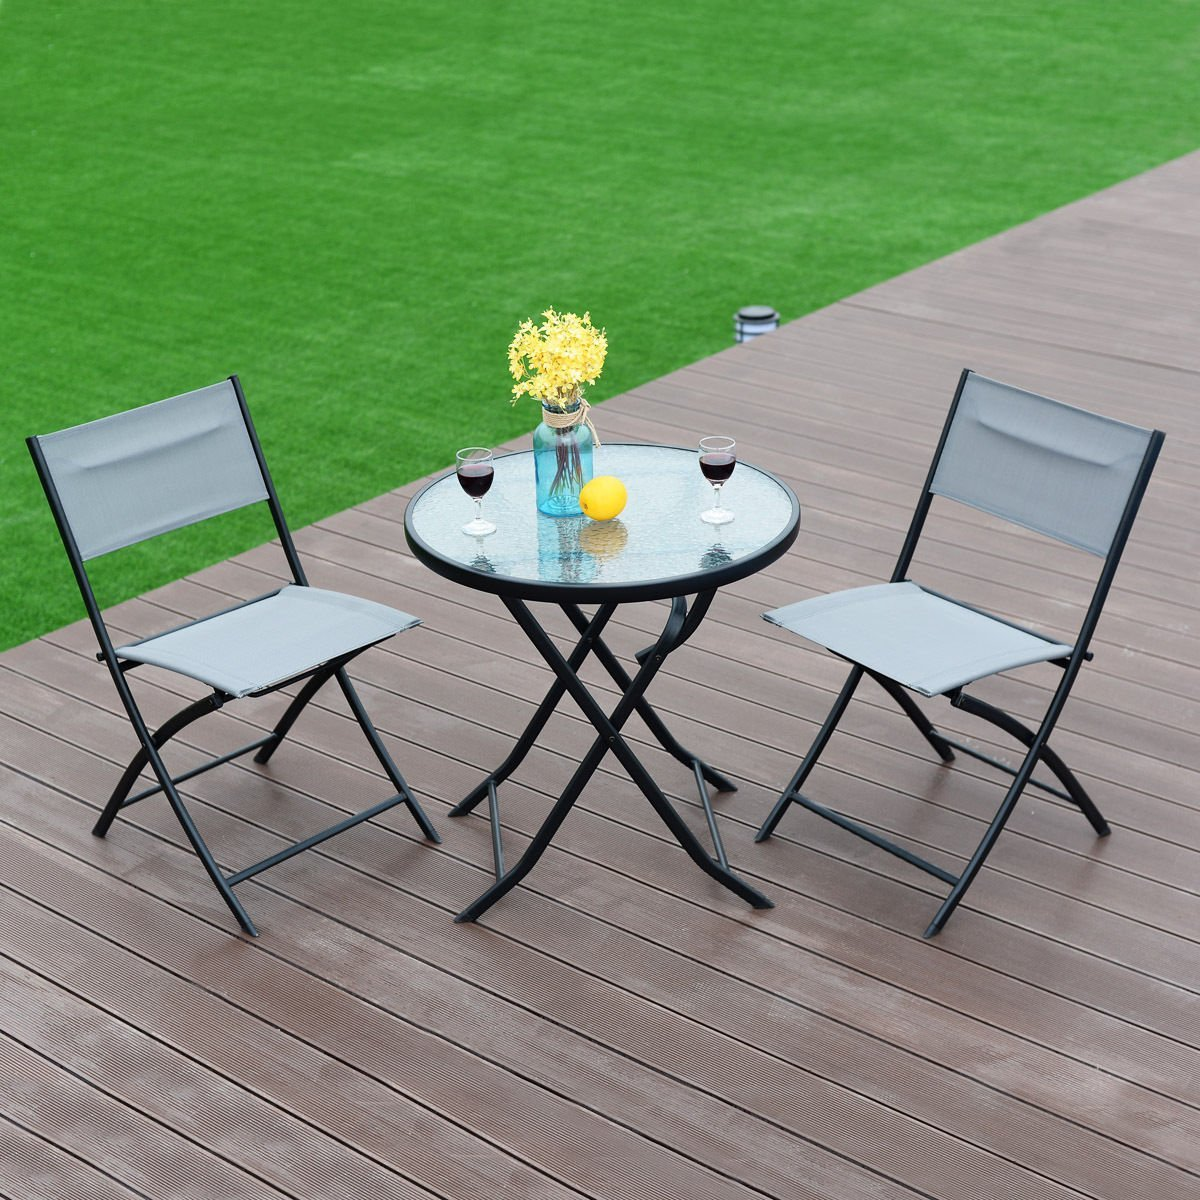 Get Quotations New Mtn G 3 Piece Table Chair Set Metal Tempered Gl Folding Outdoor Patio Garden